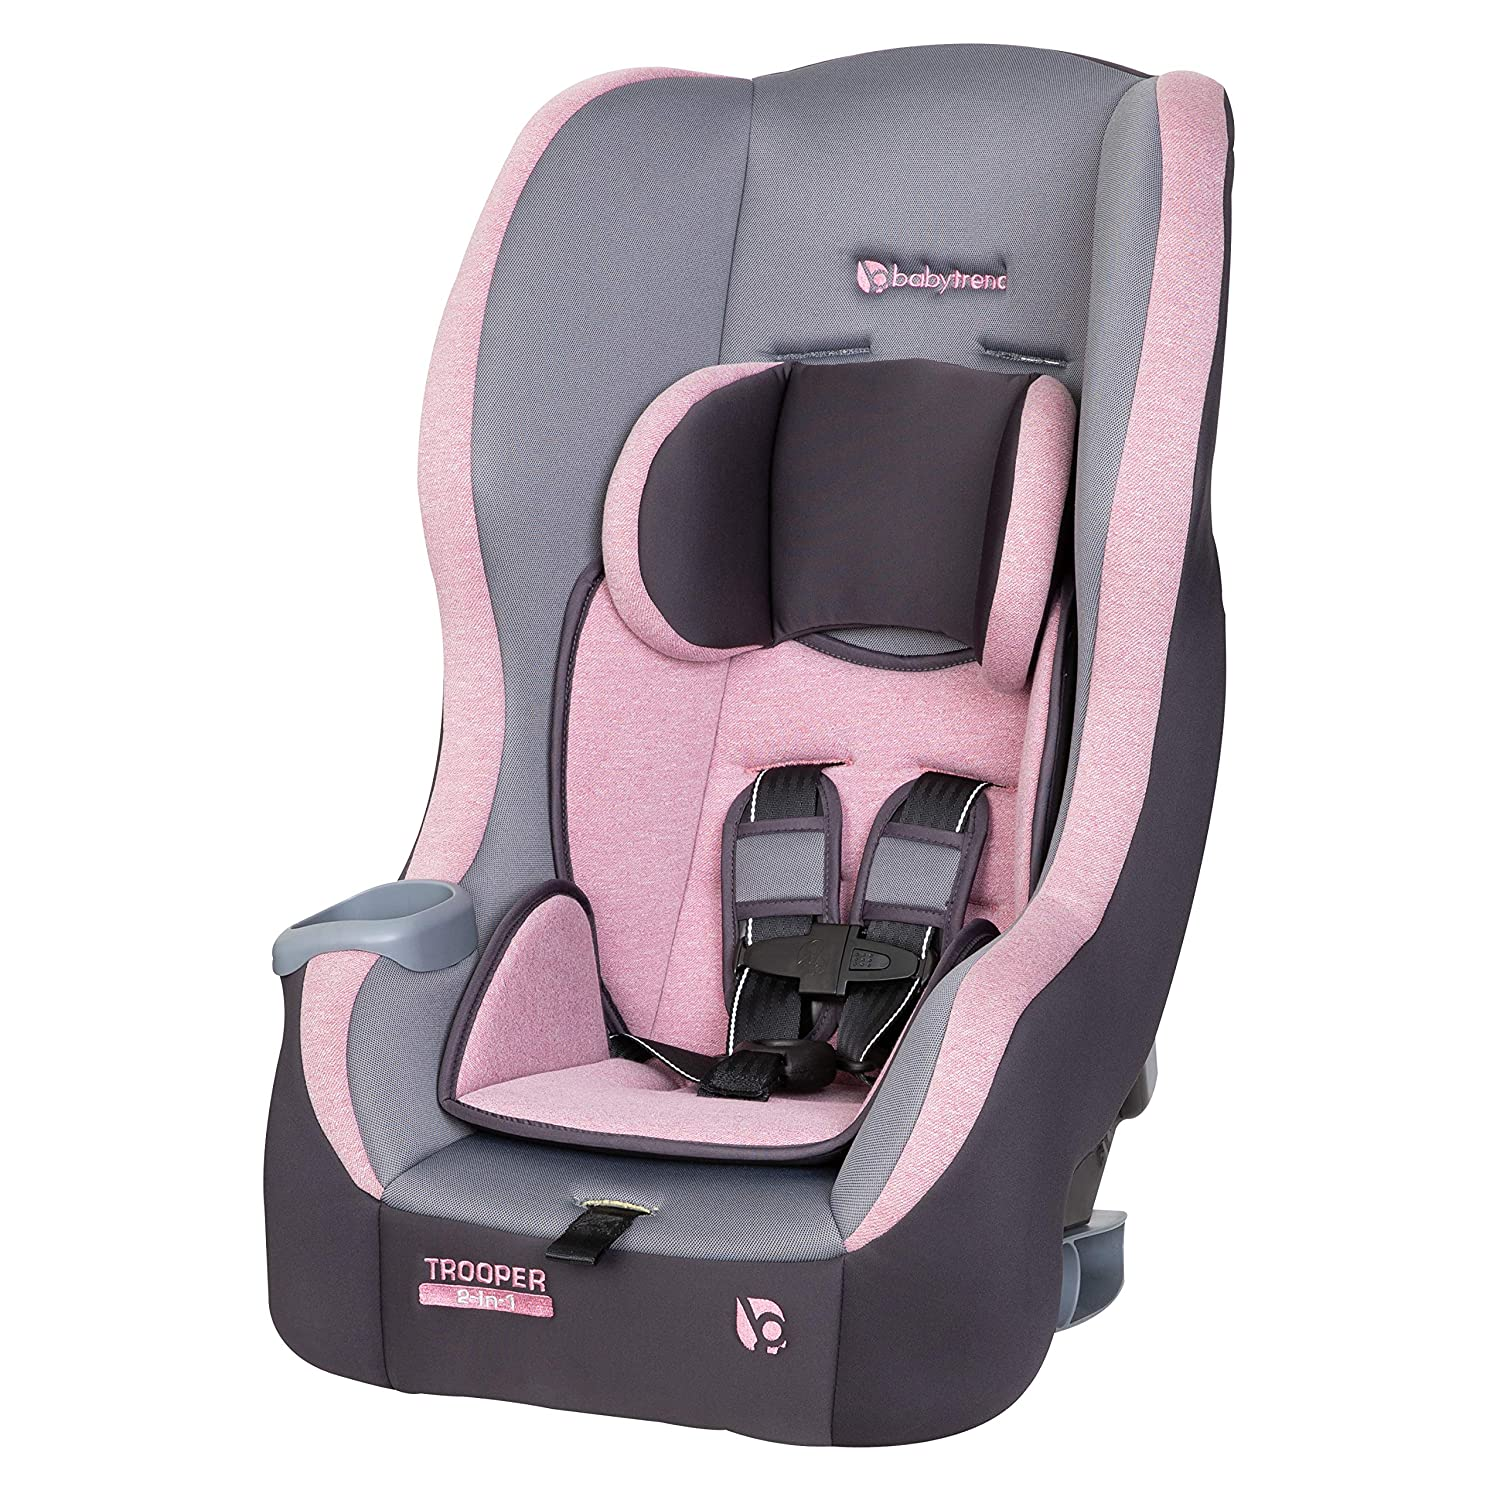 Baby Trend Trooper 2-in-1 Convertible Car Seat, Cassis Pink